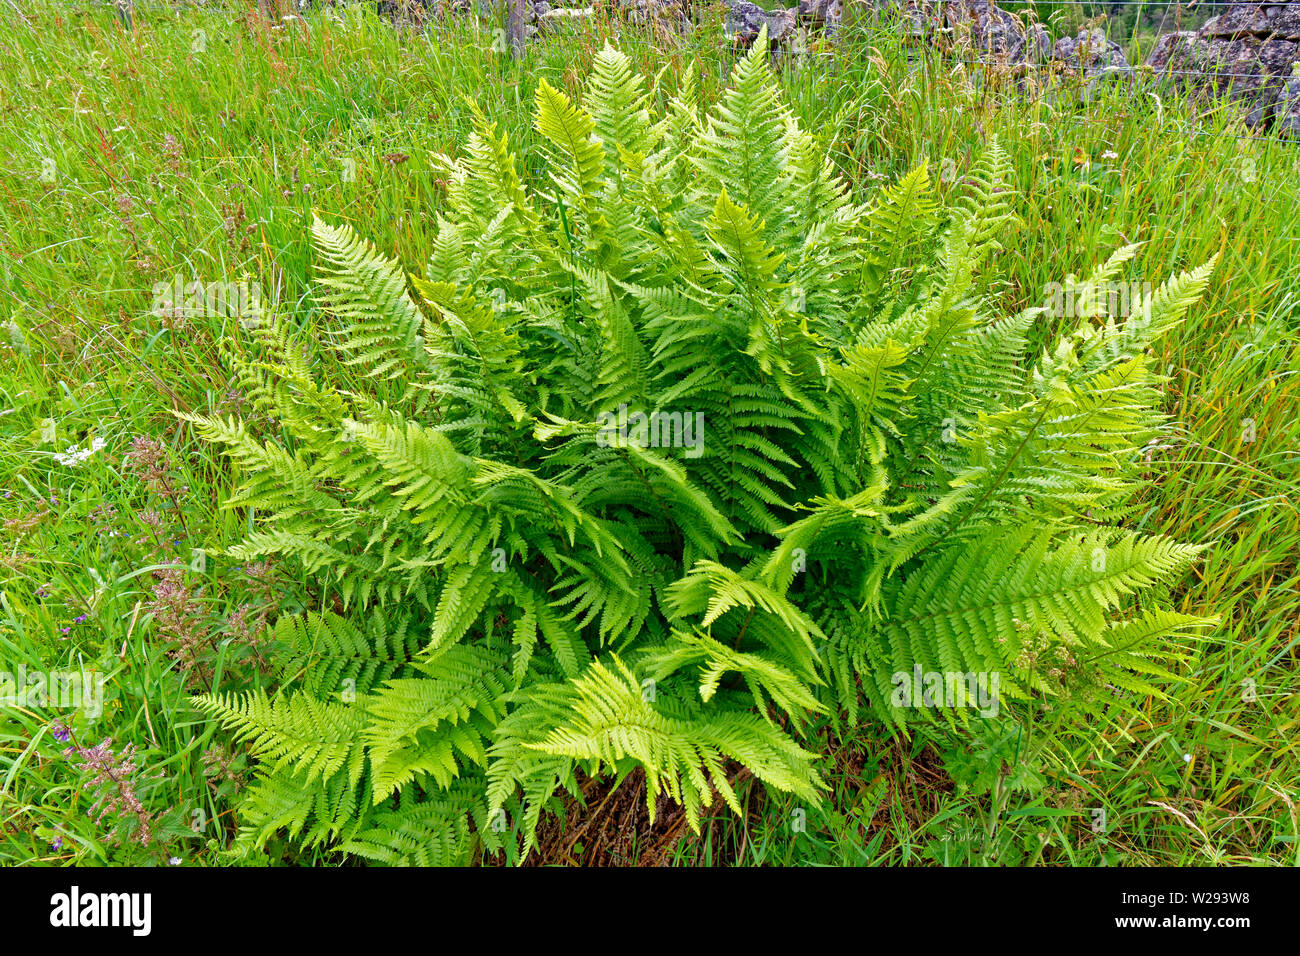 SPEYSIDE WAY SCOTLAND SCALY MALE FERN Dryopteris affinis IN EARLY SUMMER - Stock Image